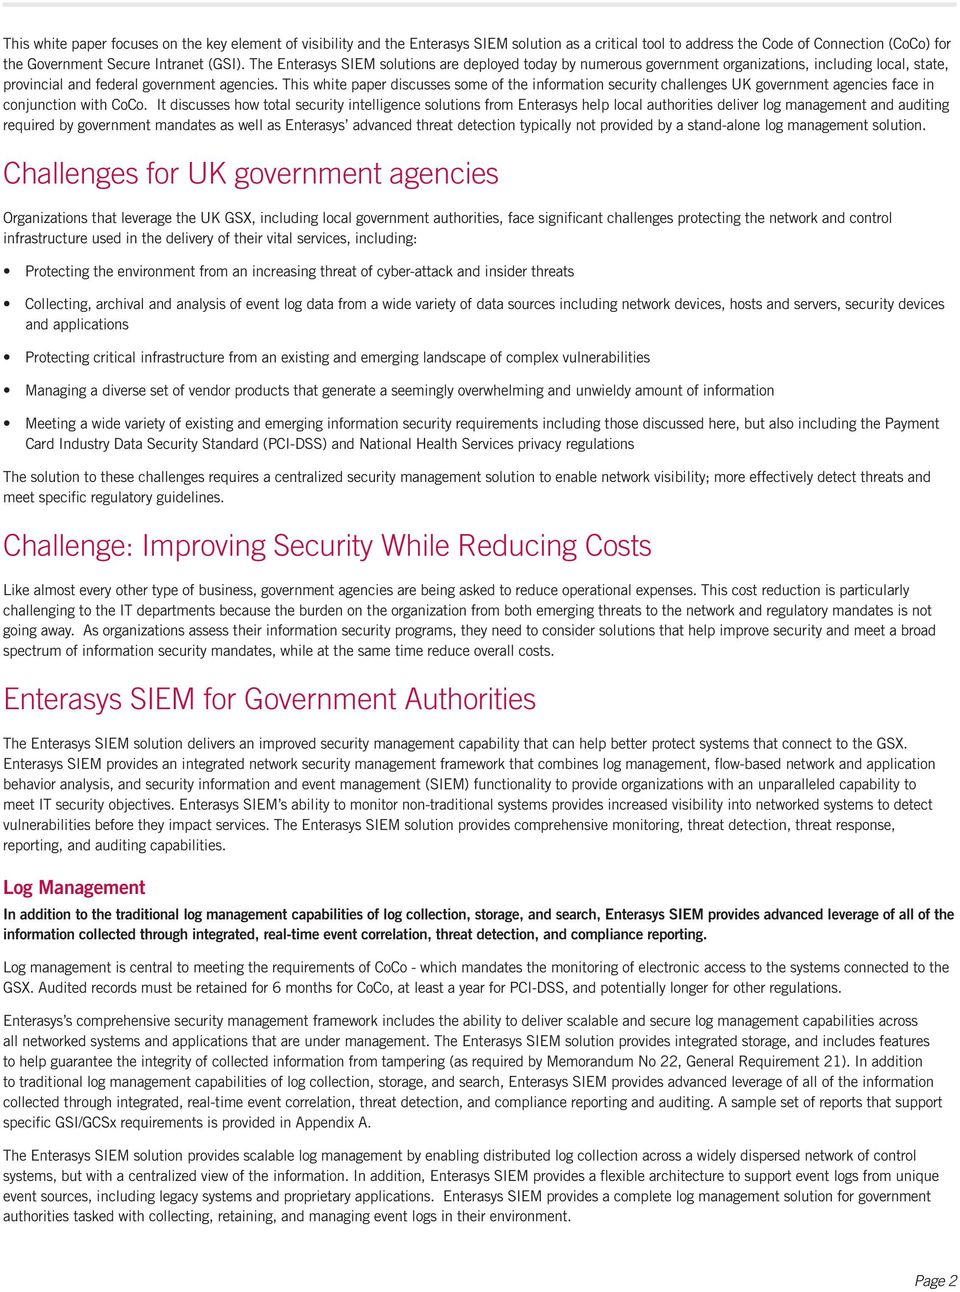 This white paper discusses some of the information security challenges UK government agencies face in conjunction with CoCo.